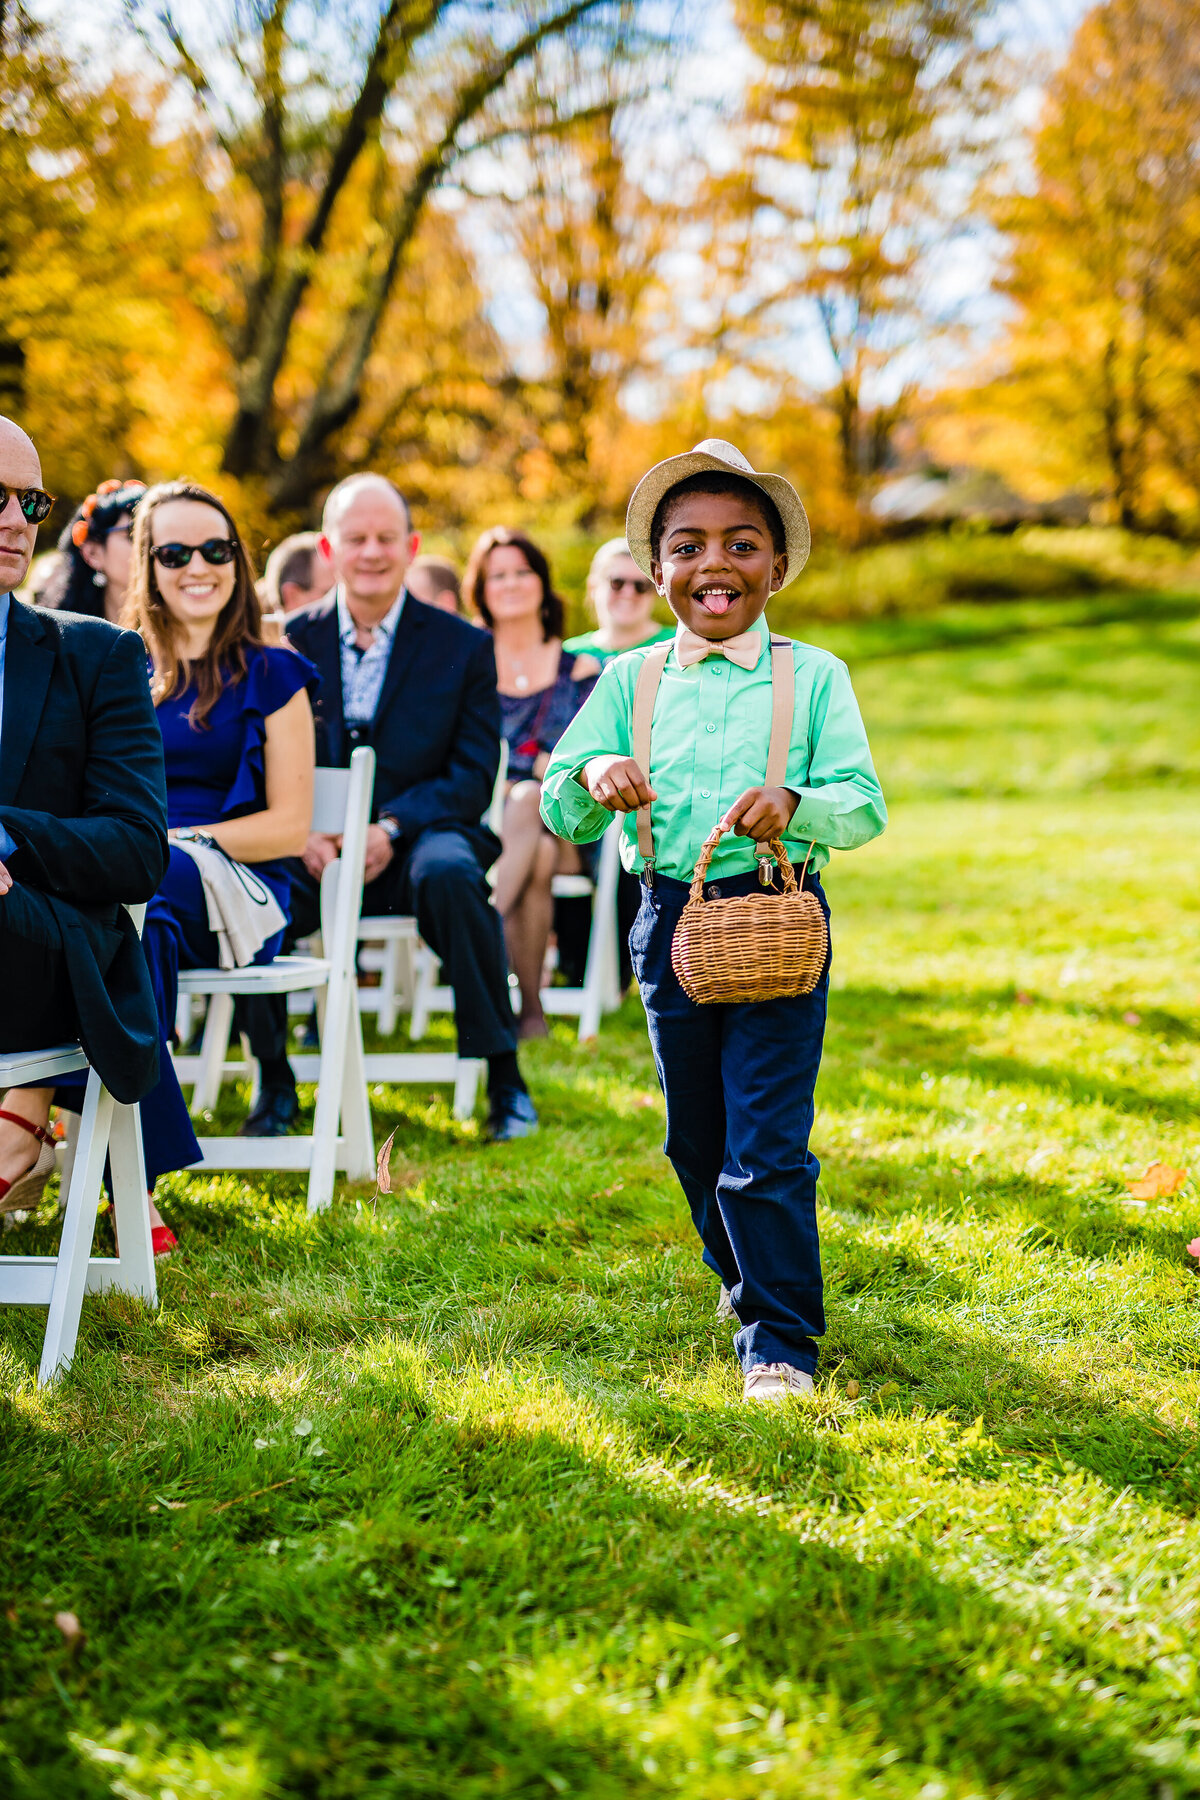 wedding-ceremony-ring-bearer-vermont-outdoor-wedding-andy-madea-photography